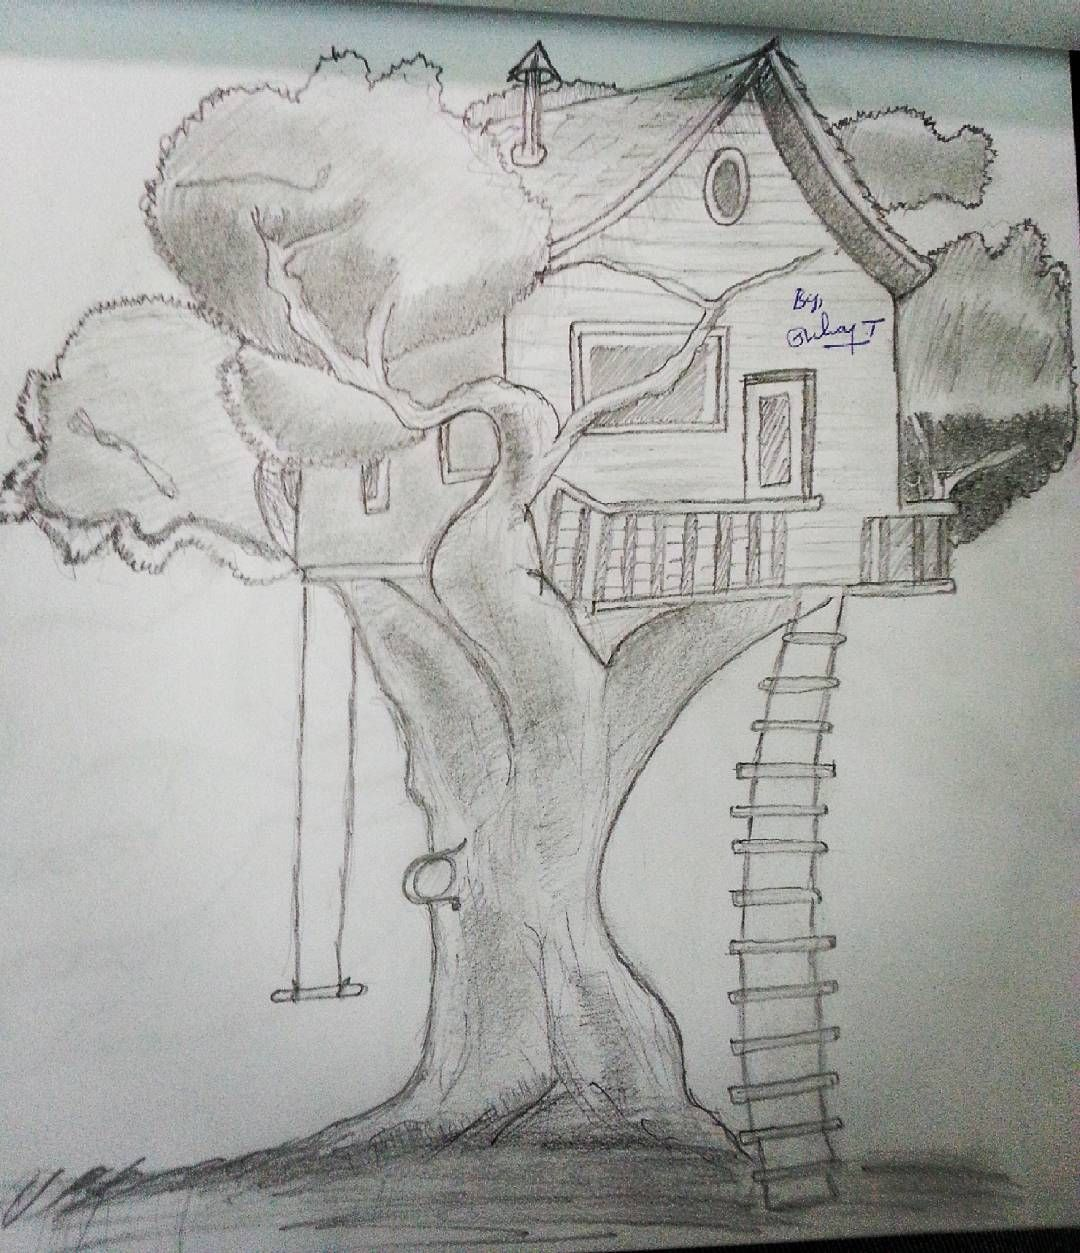 Tree house pencil drawing drawingoftheday pencil pencildrawing drawing art easydrawing beginers